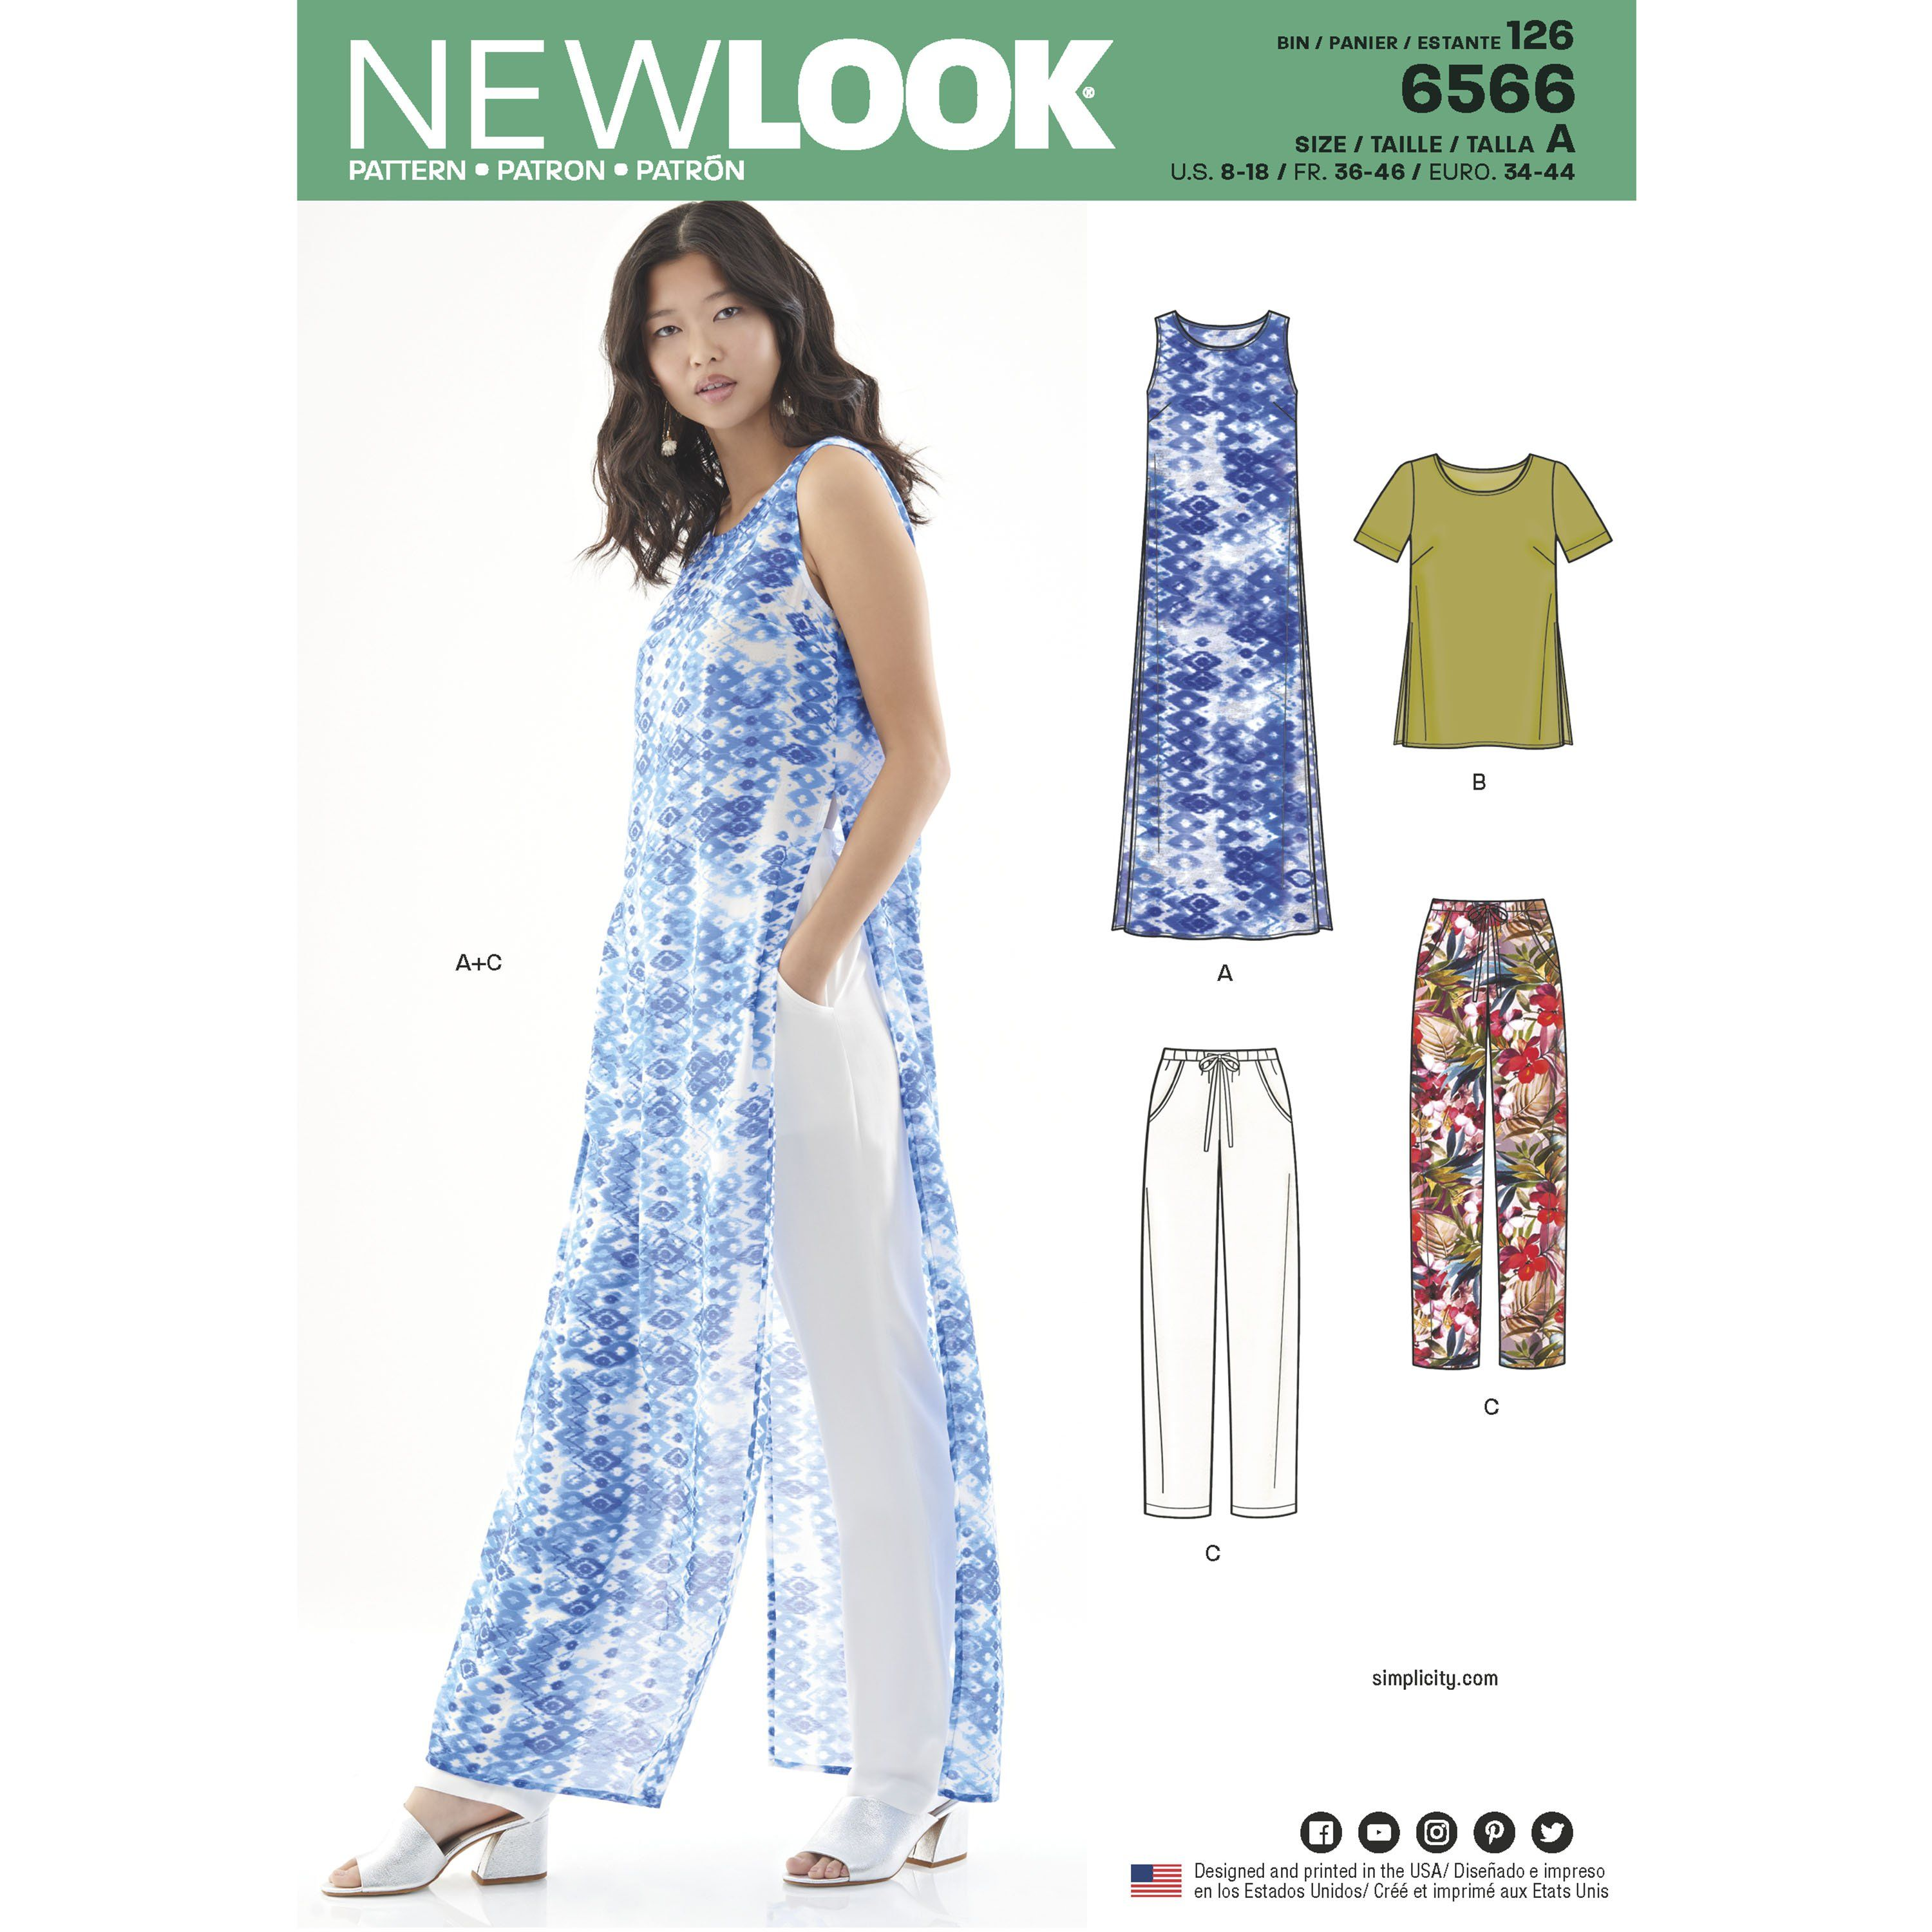 New look new look pattern missesu tunic top and pants blusas